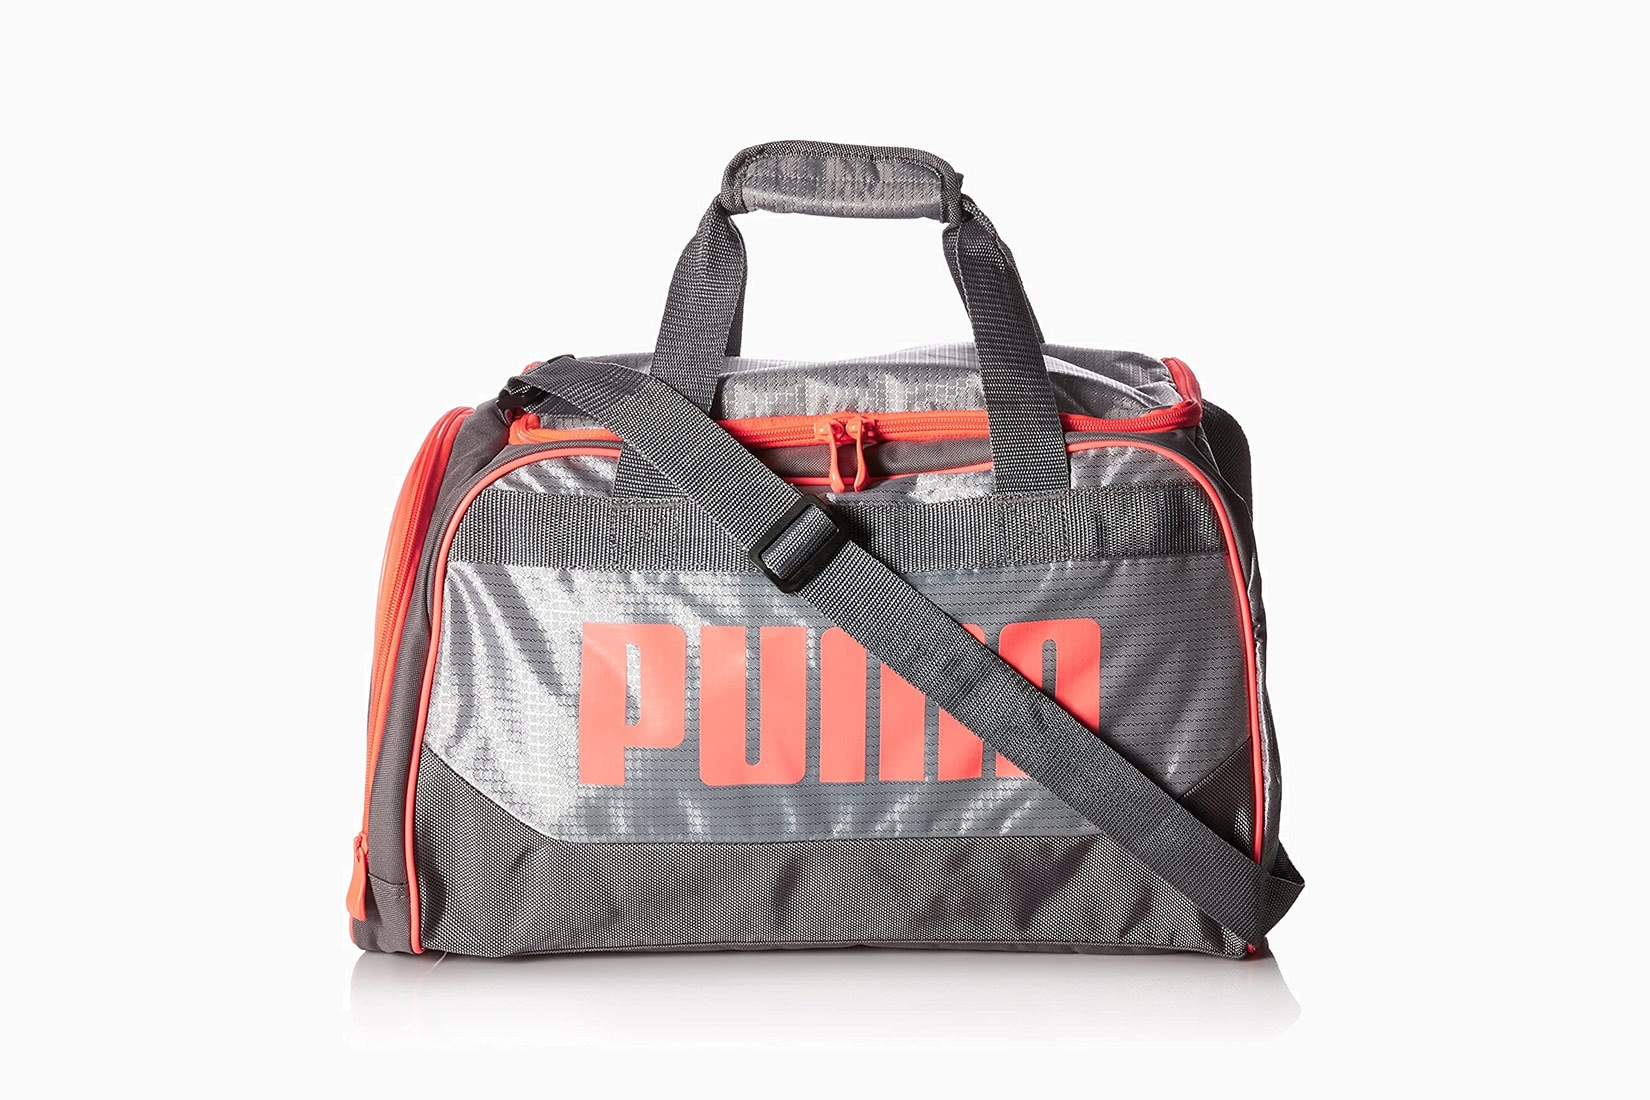 13 Best Gym Bags For Women: Stylish Workout & Fitness Bags (2020)